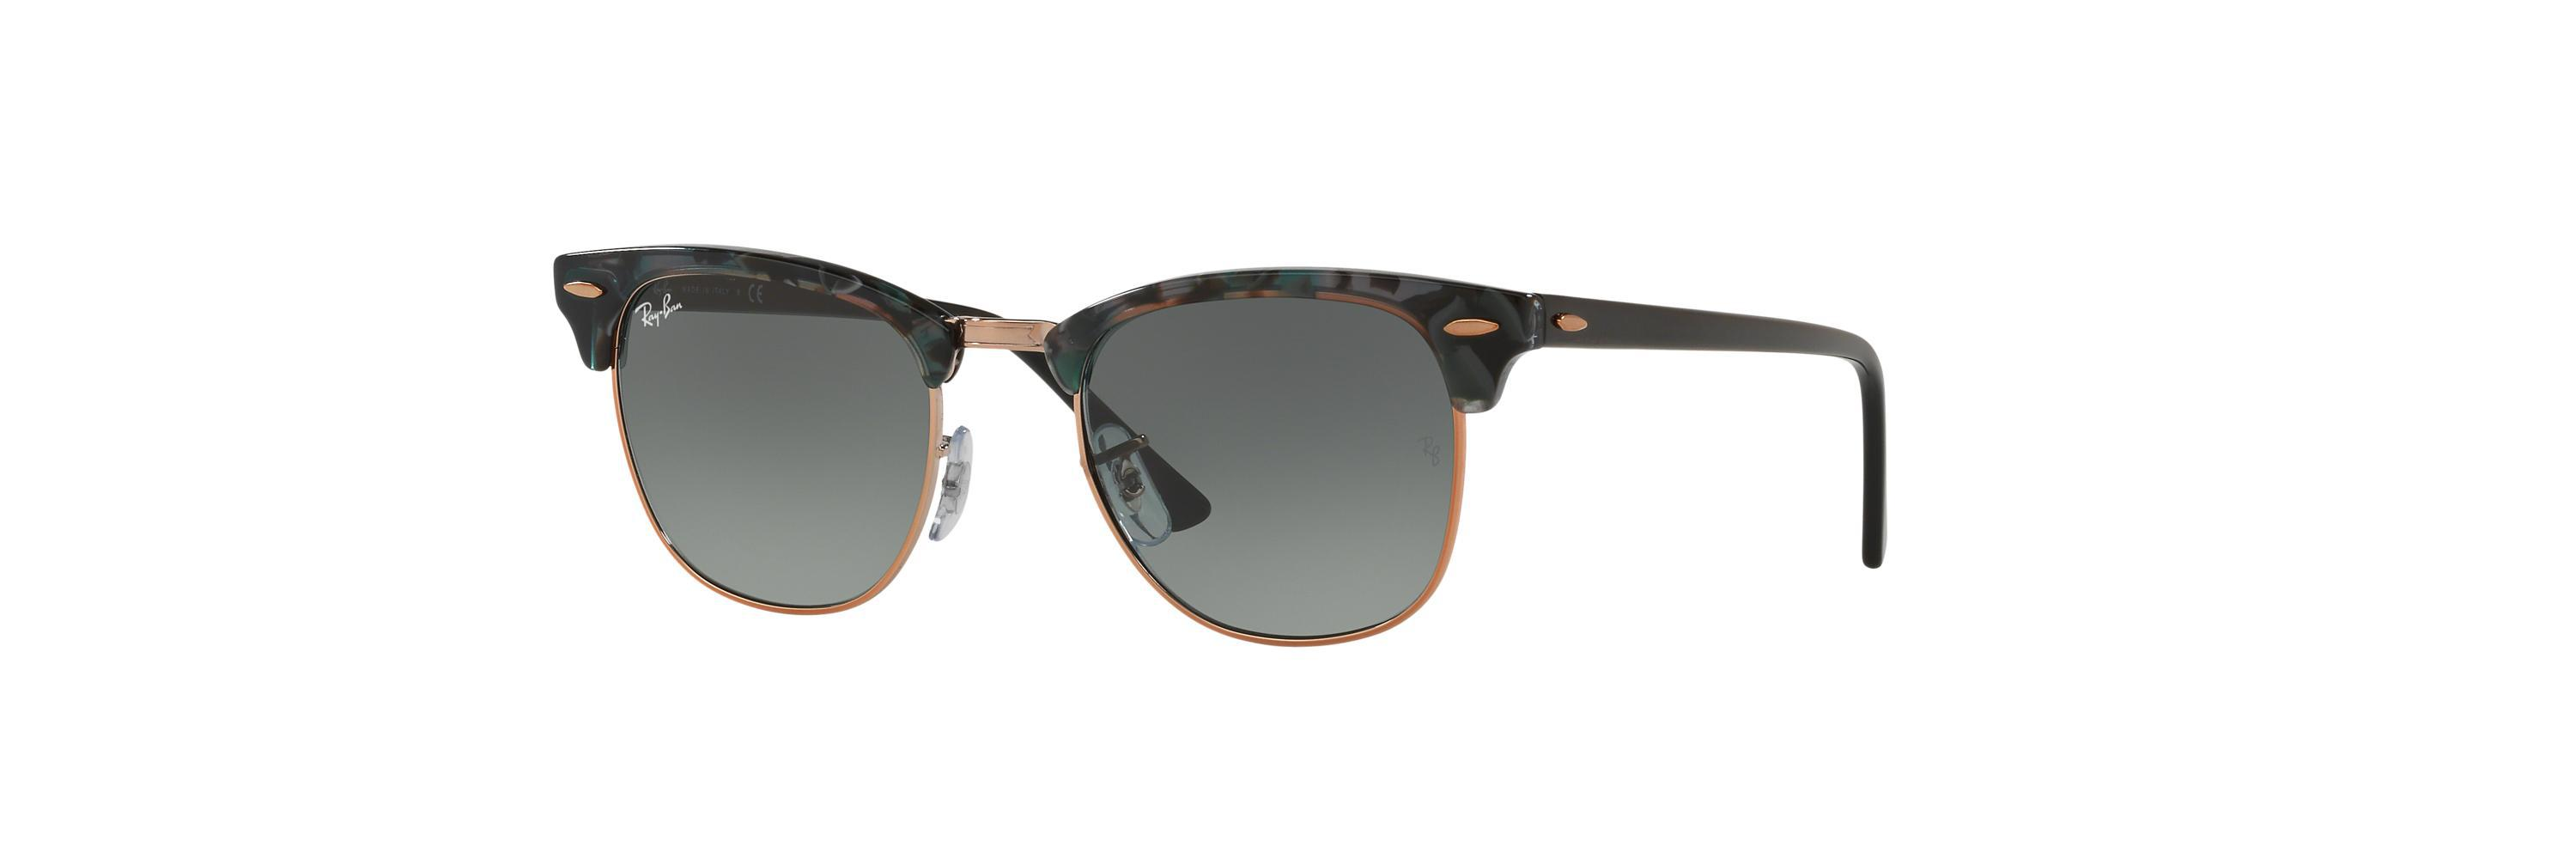 3edce907c45 Ray-Ban Rb3016 51 Clubmaster in Gray for Men - Lyst